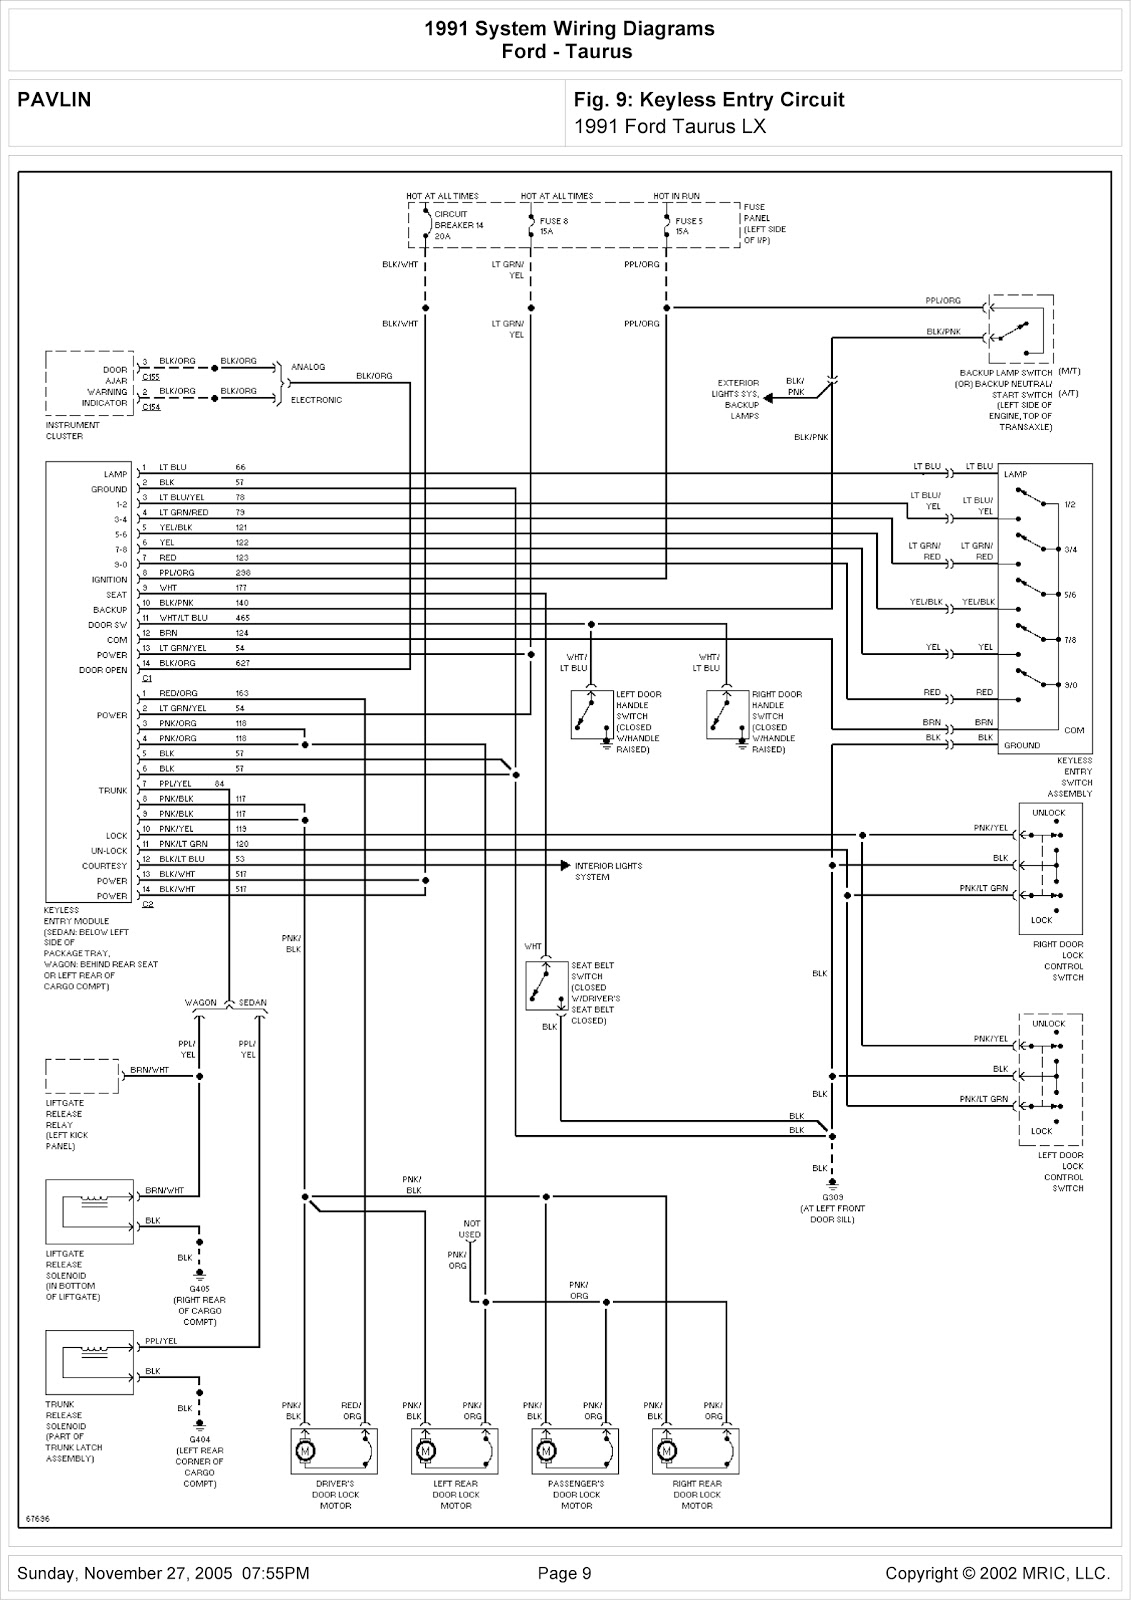 keyless entry wiring diagram ford ceiling fan installation 1991 taurus lx system for